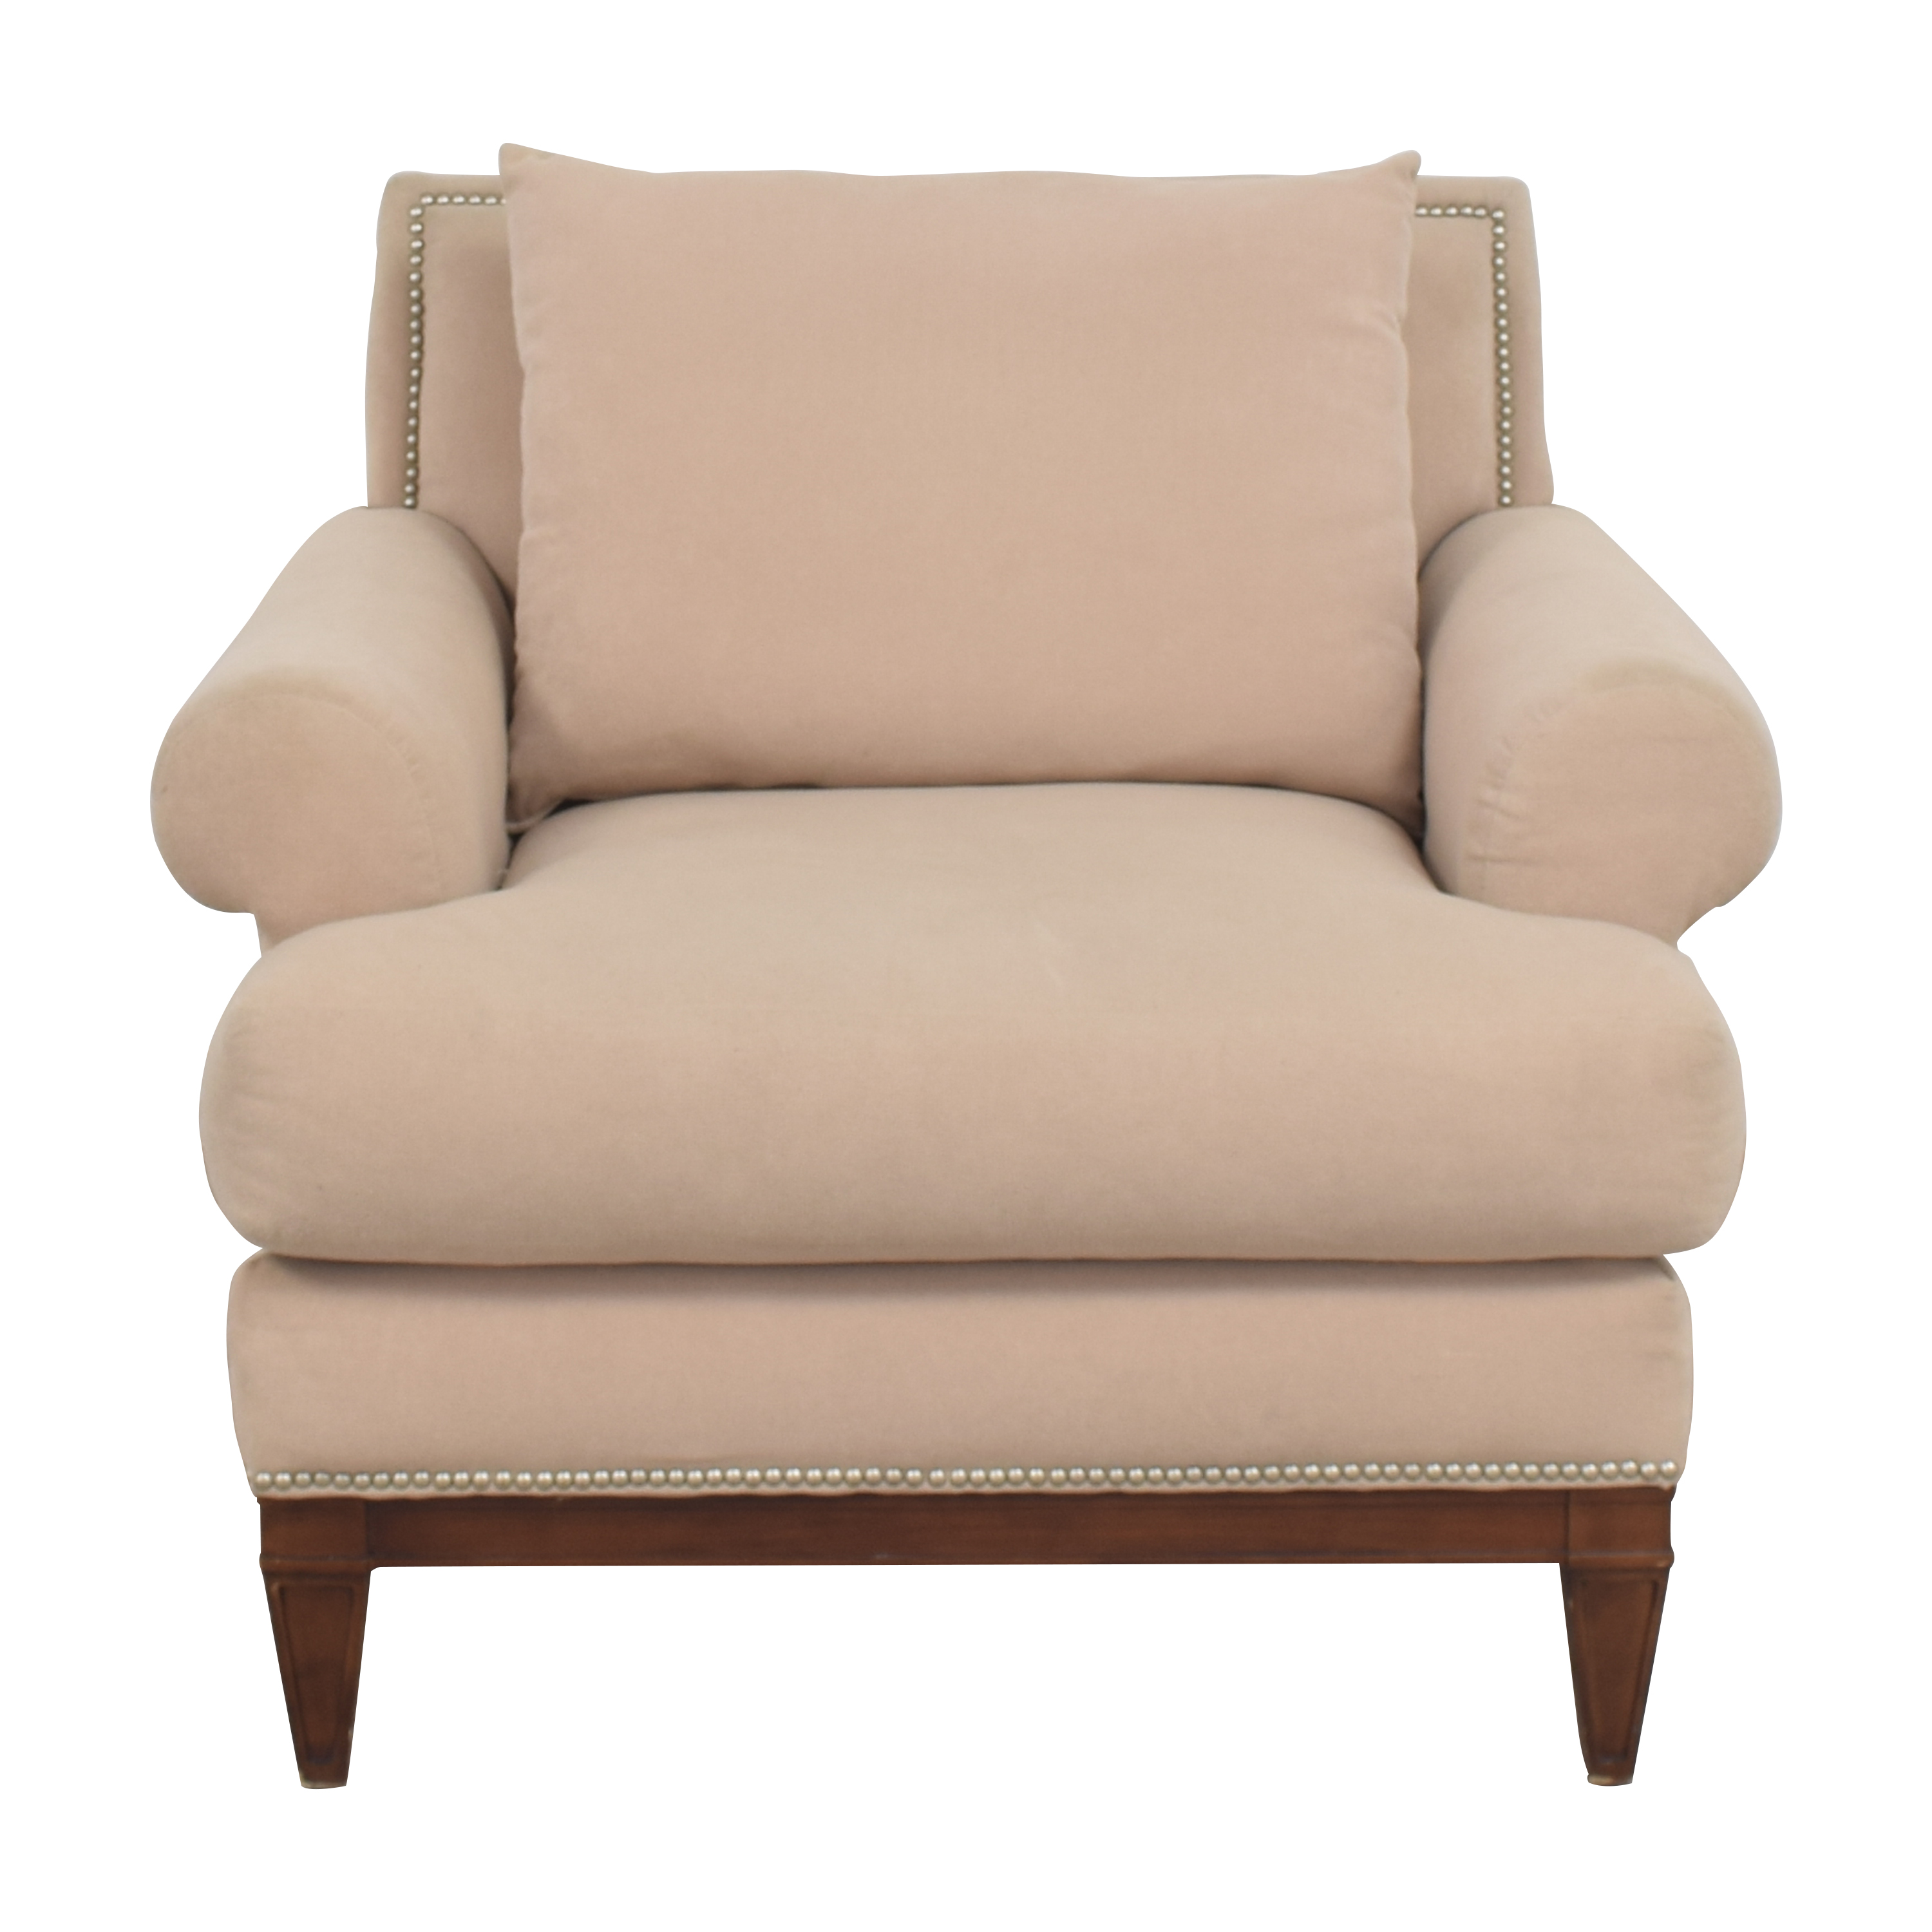 buy Bloomingdale's Roll Arm Accent Chair Bloomingdale's Chairs